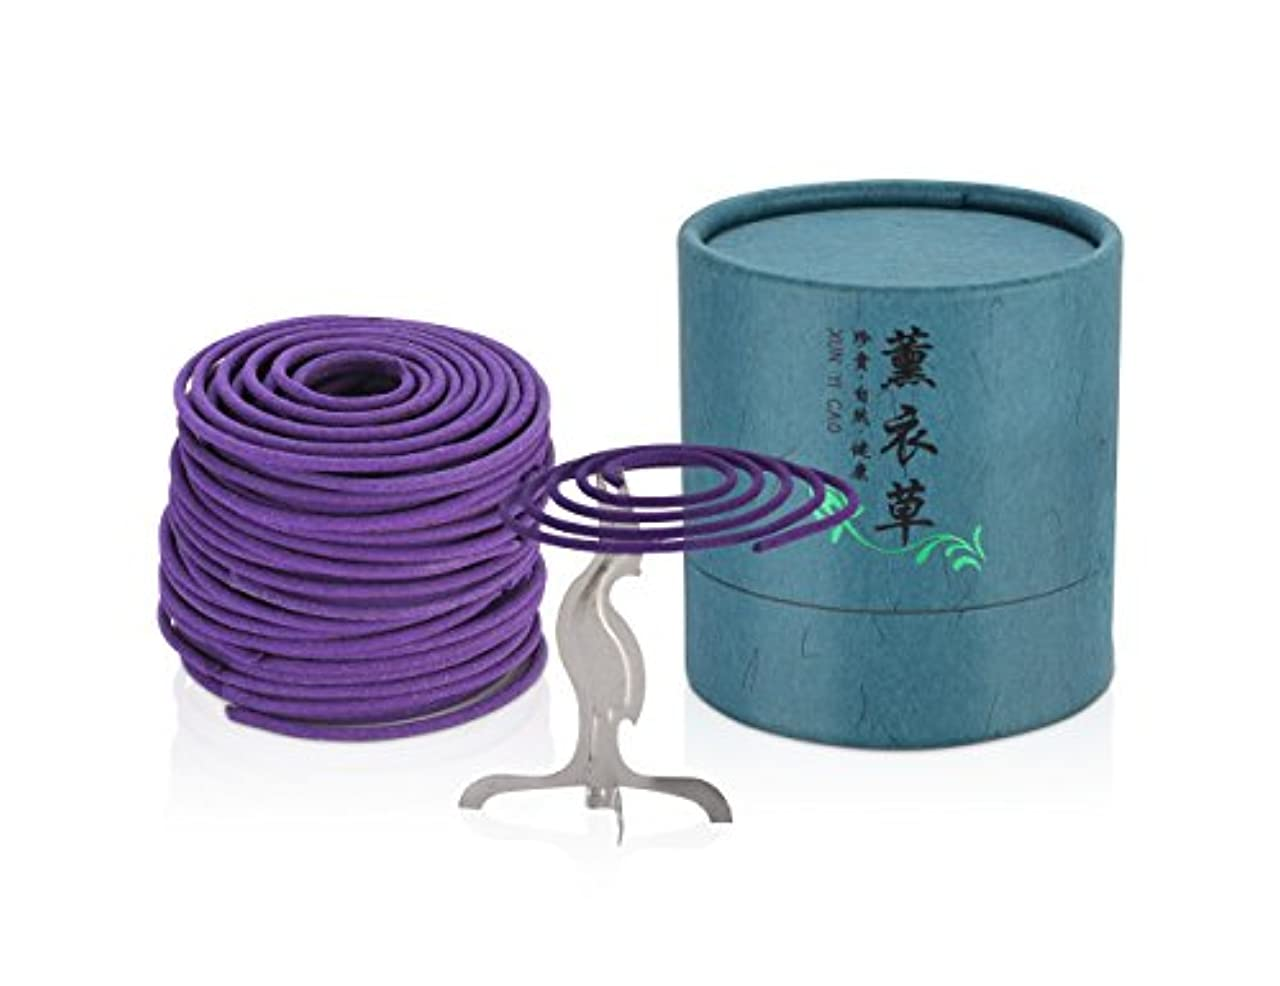 遺伝子思慮のないアクション(Lavender) - Xujia Lavender Incense Coils,Zen Buddhist Coils Incense for Burner